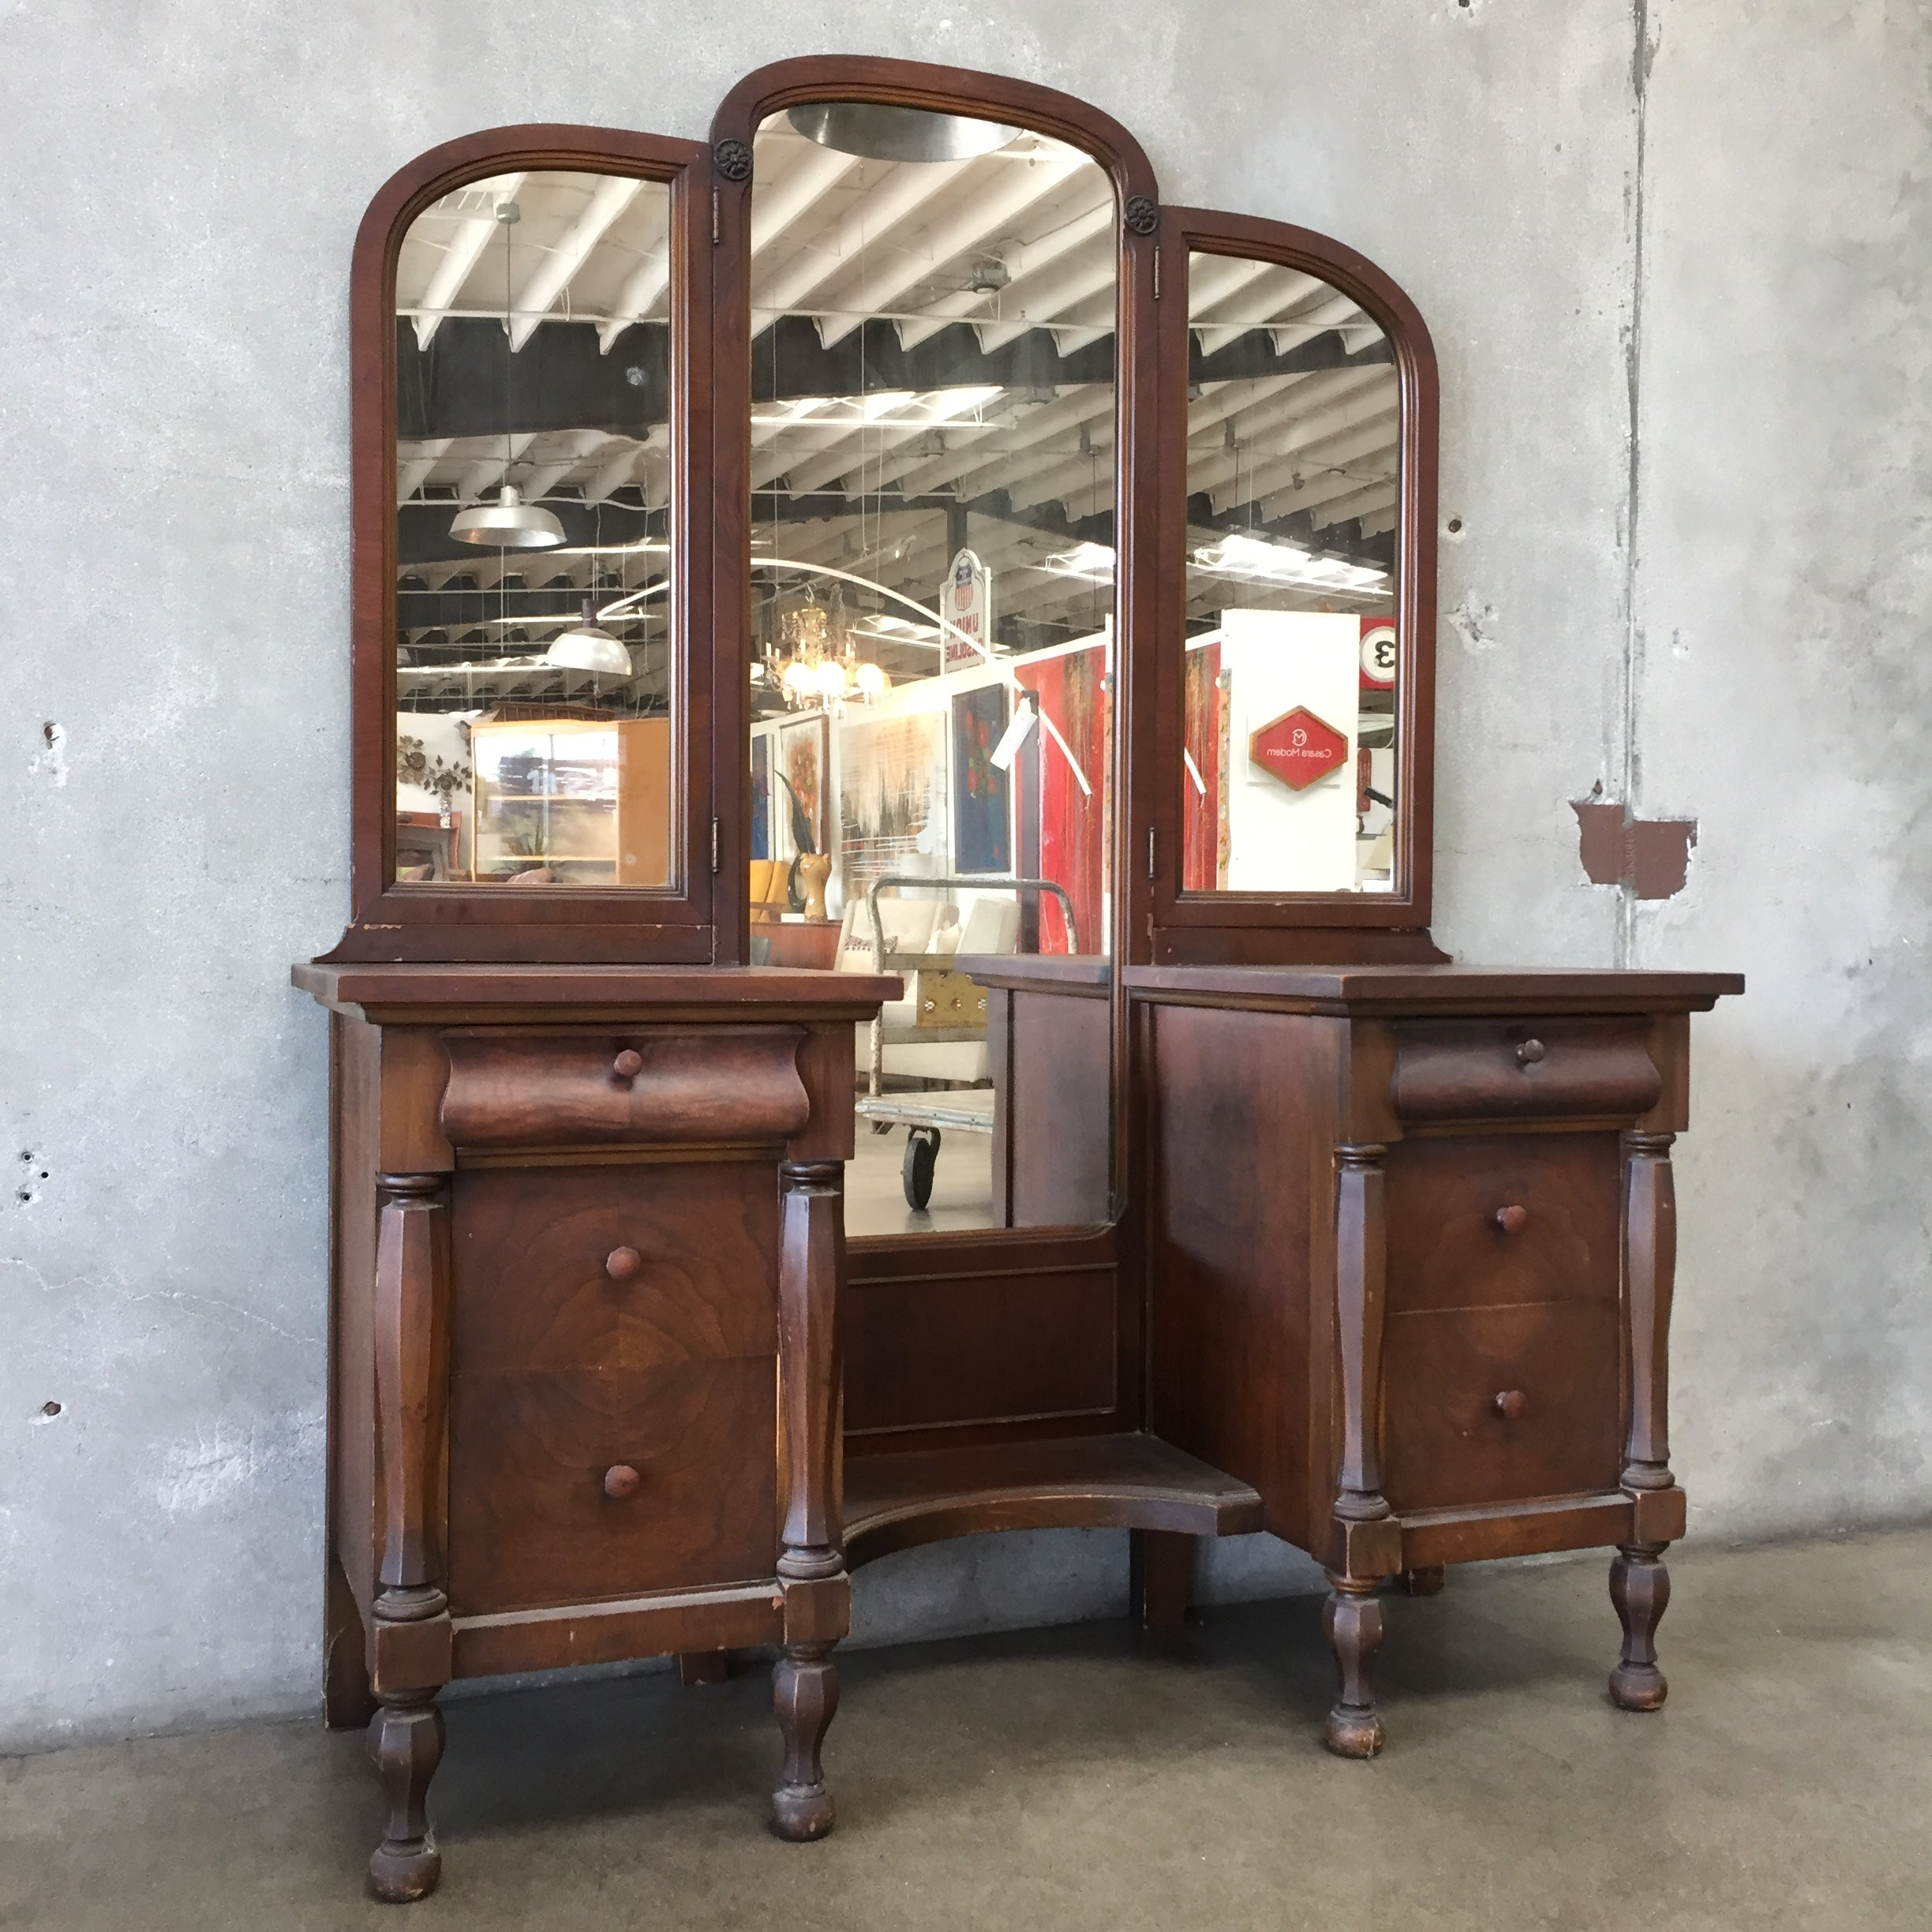 Admirable 1920S Wood Three View Vanity Gamerscity Chair Design For Home Gamerscityorg